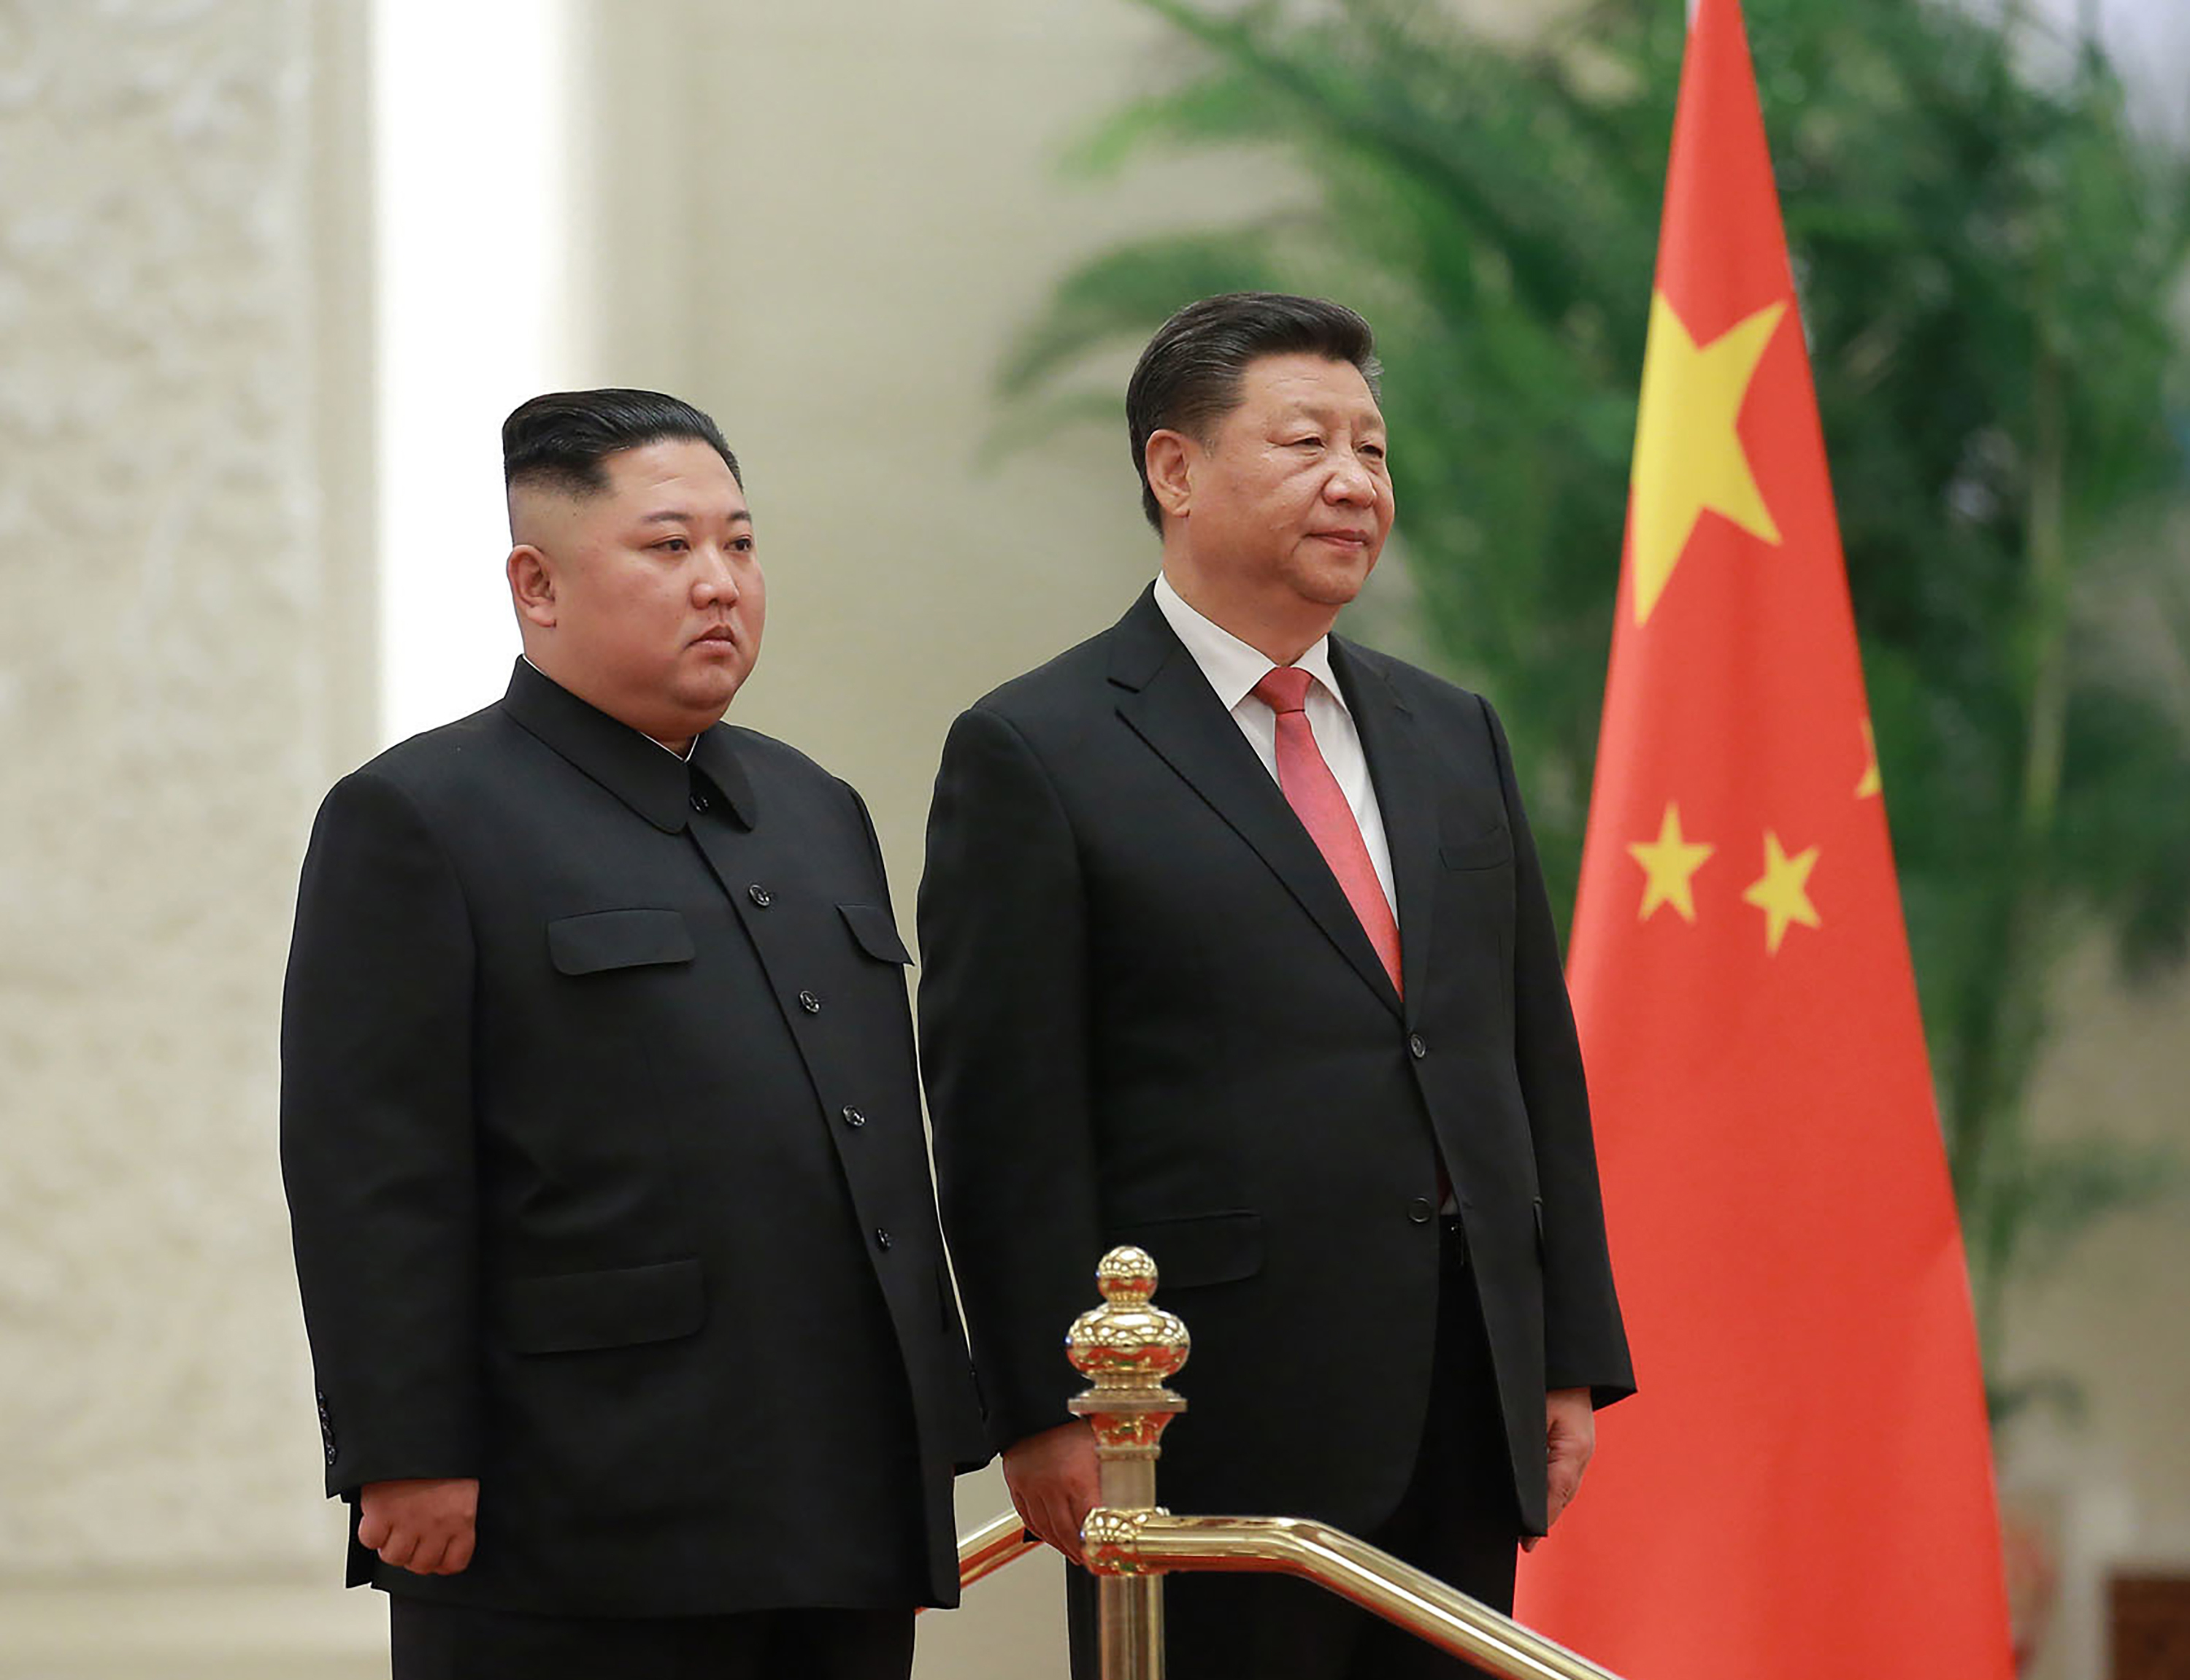 In this Jan. 8, 2019, file photo provided by the North Korean government, North Korean leader Kim Jong Un, left, and Chinese President Xi Jinping attend a welcome ceremony at the Great Hall of the People in Beijing.